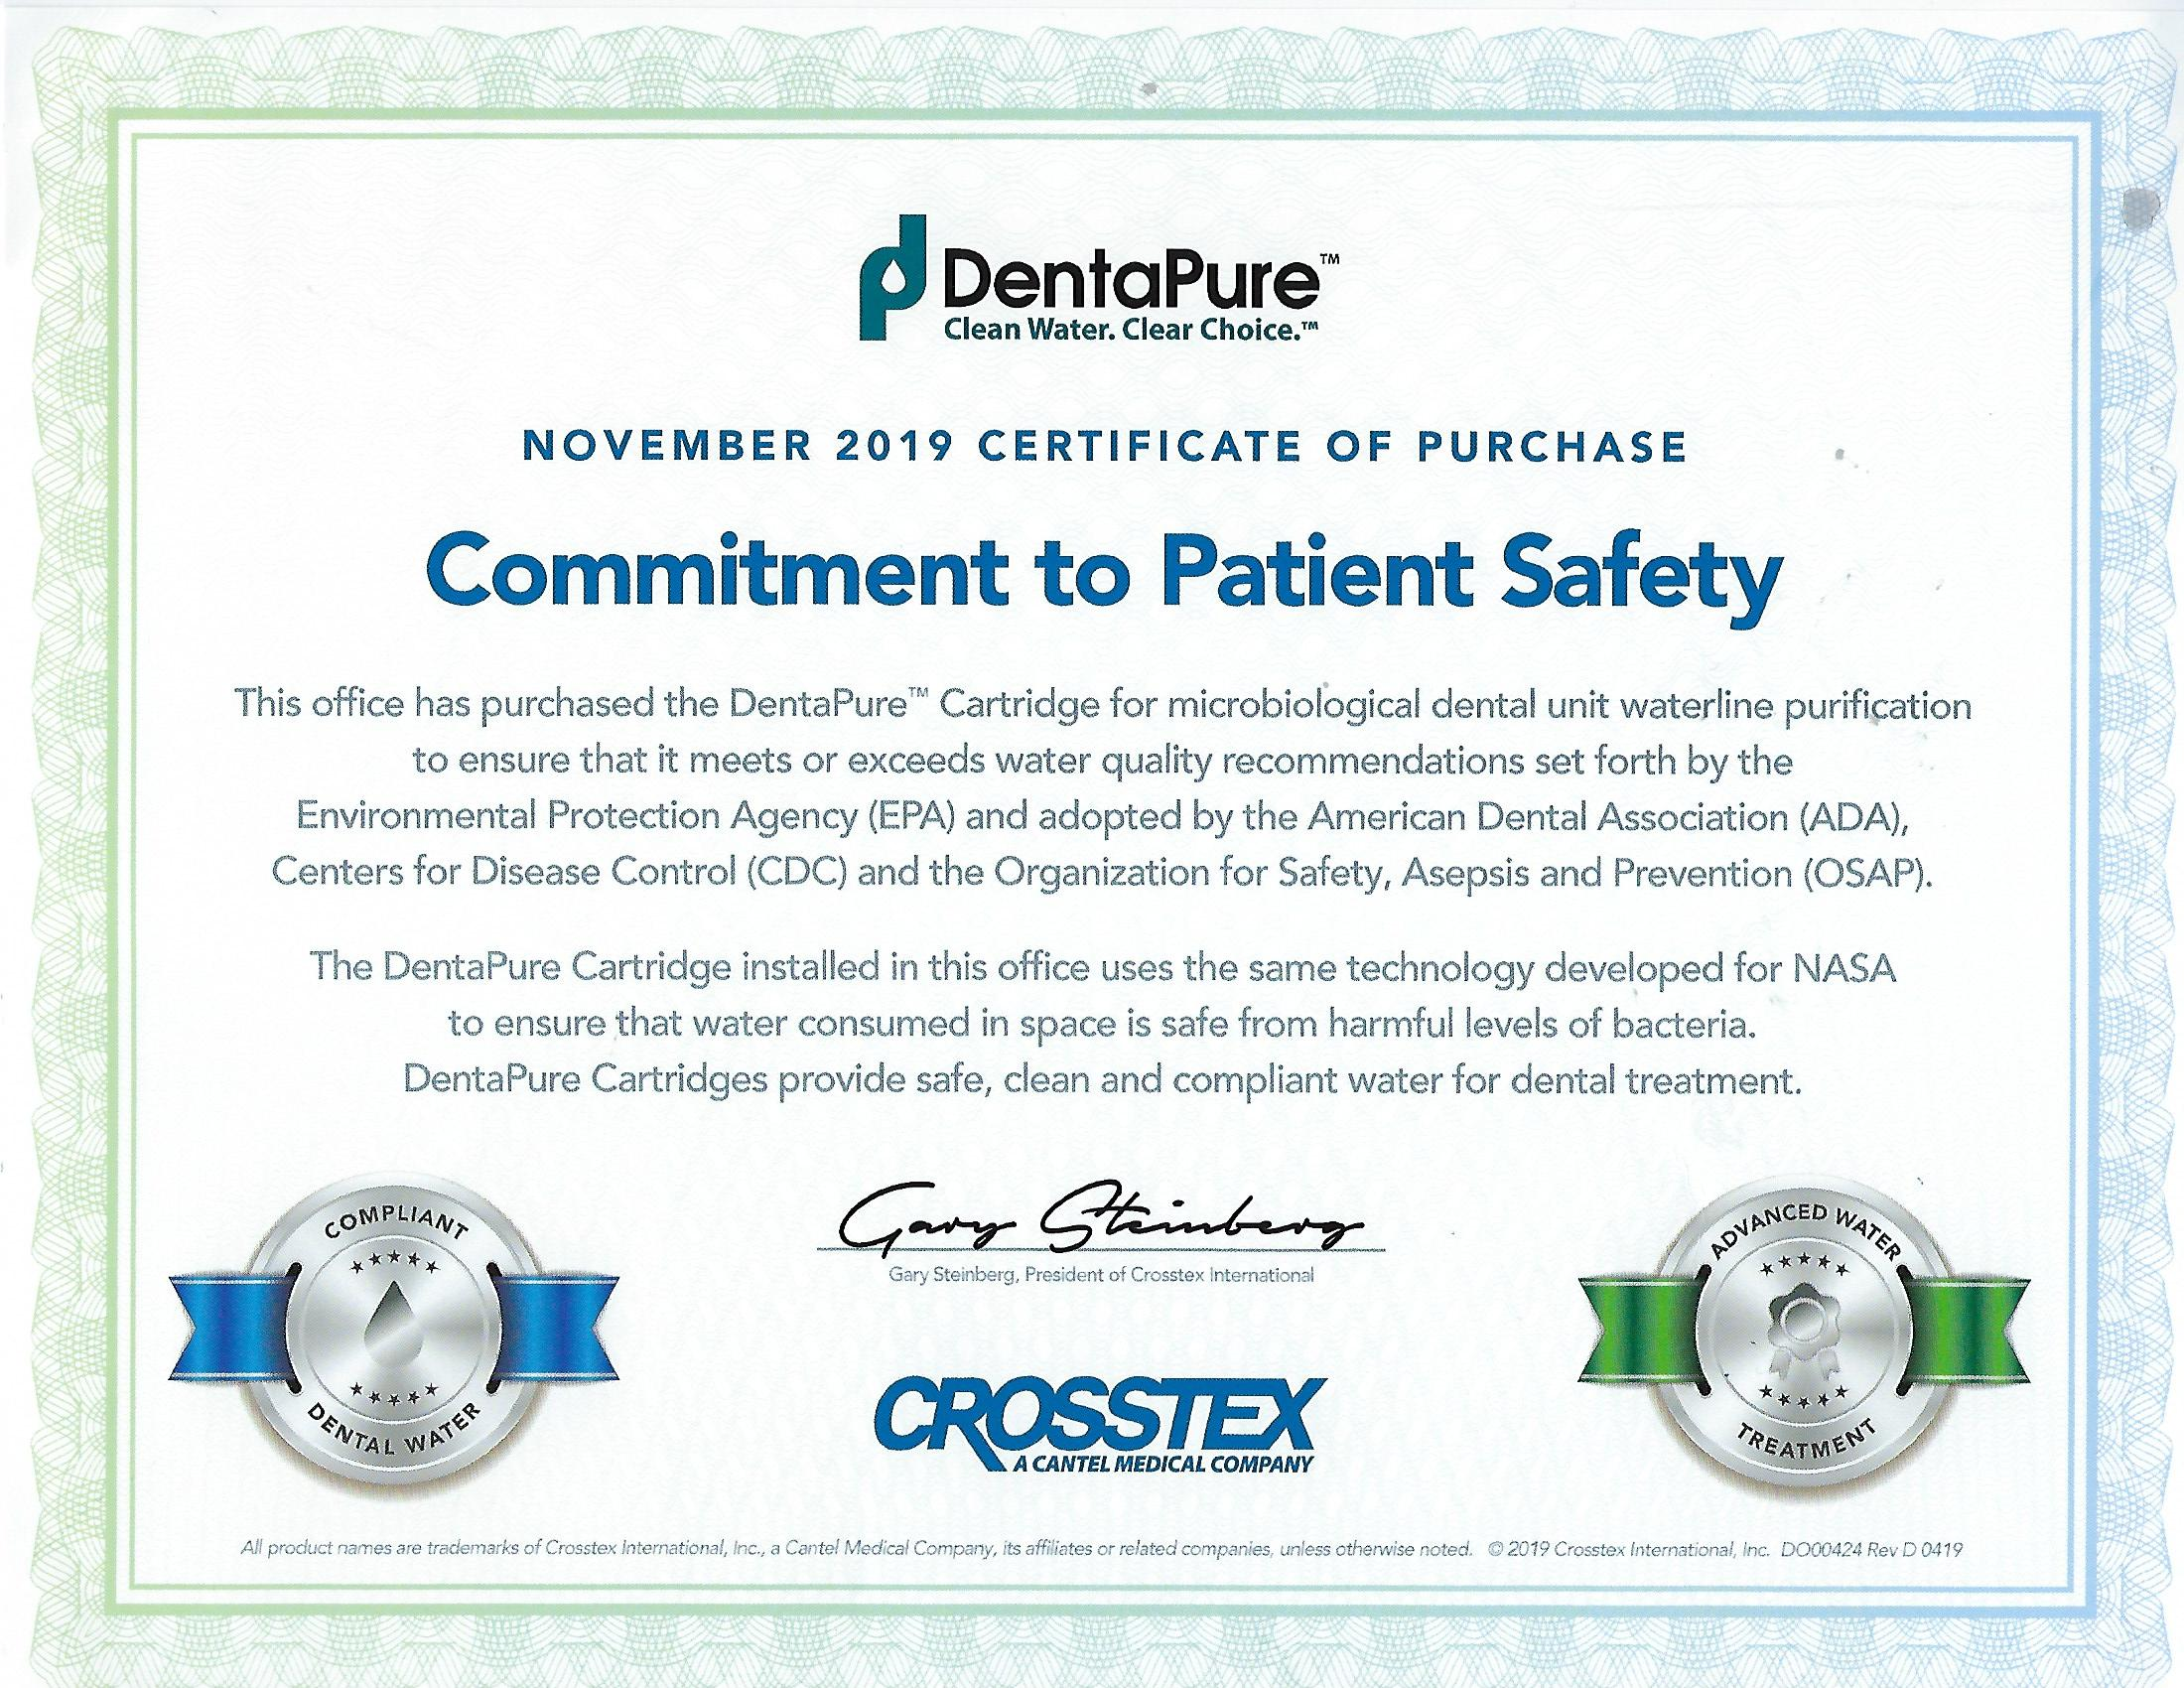 November 2019 DentaPure Certificate of Purchase